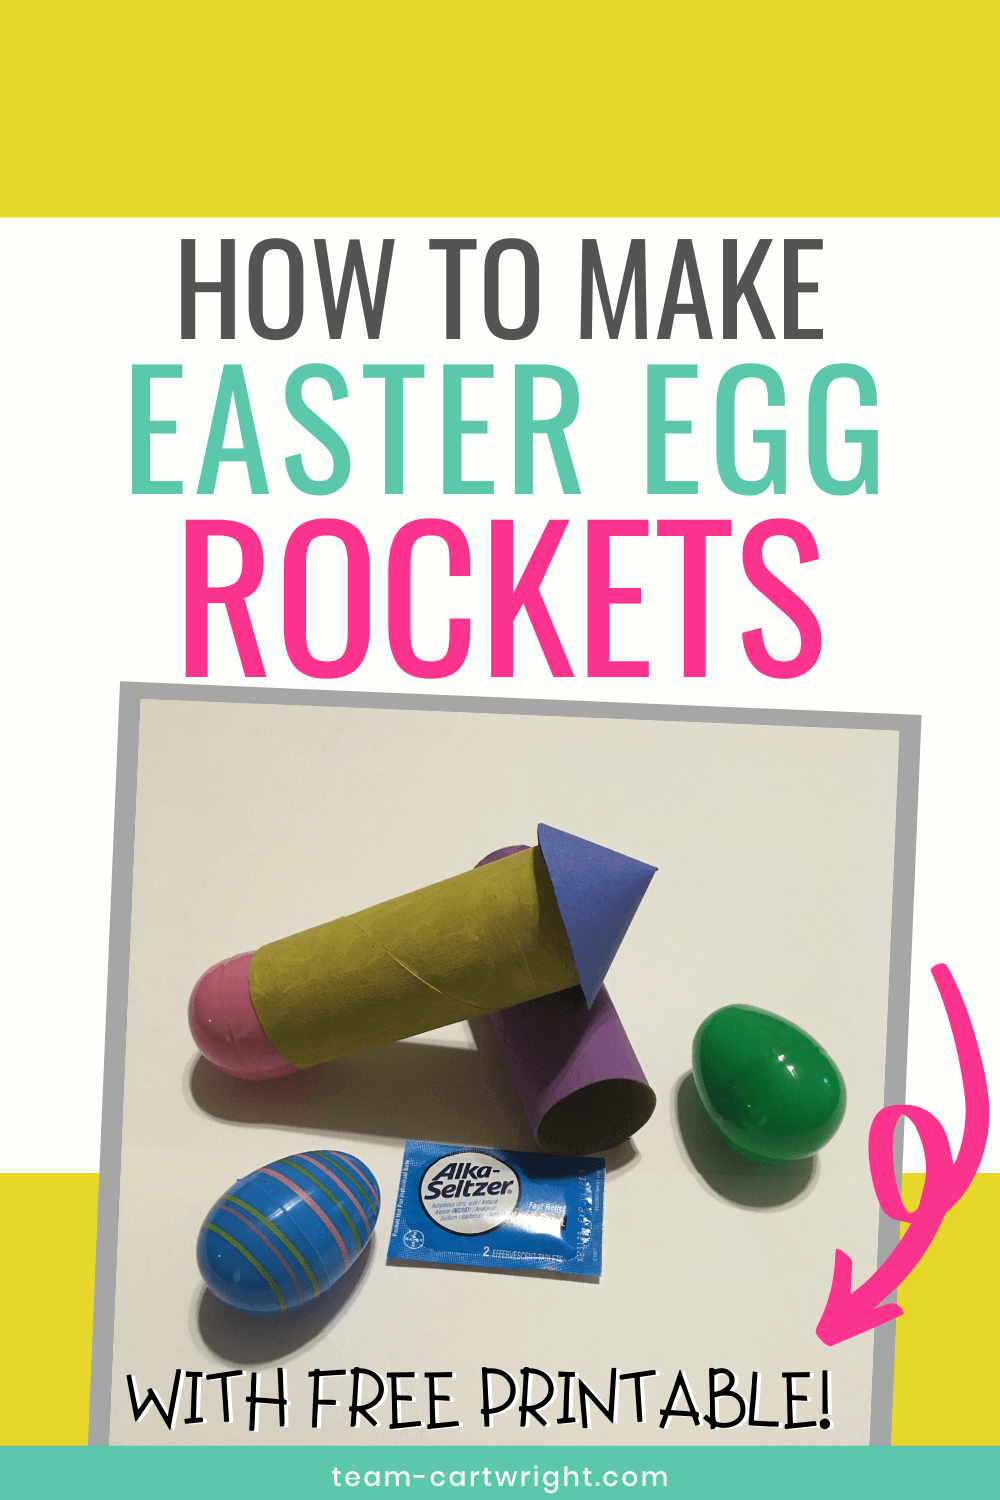 How To Make Easter Egg Rockets (with free printable!)